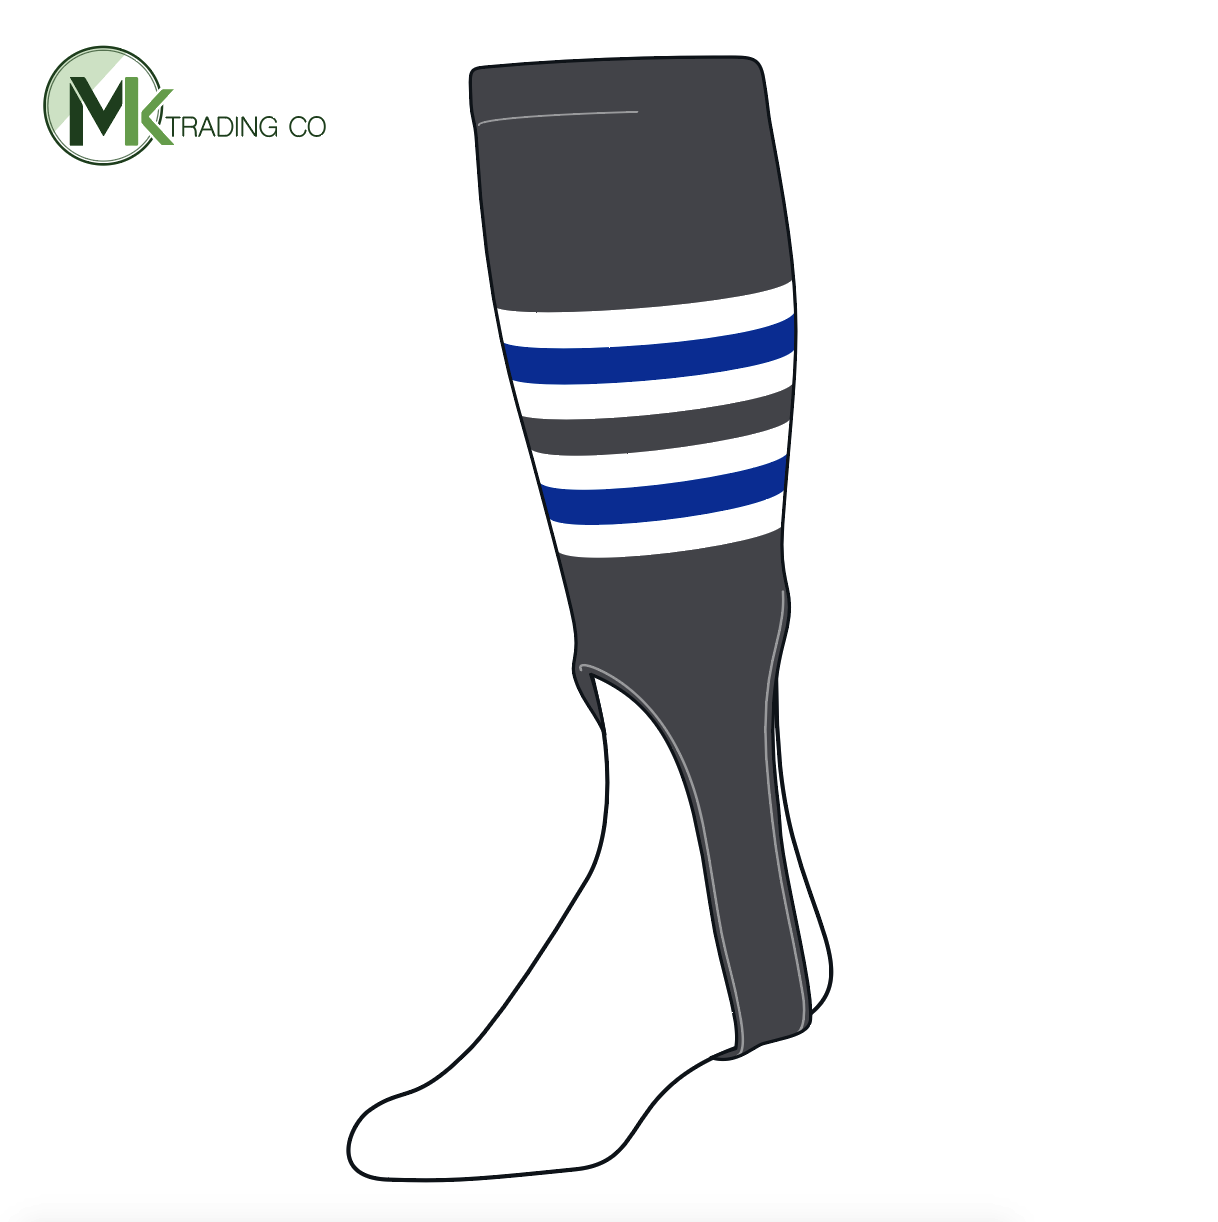 TCK Baseball Stirrups Medium (200I, 7in) Graphite, White, Royal